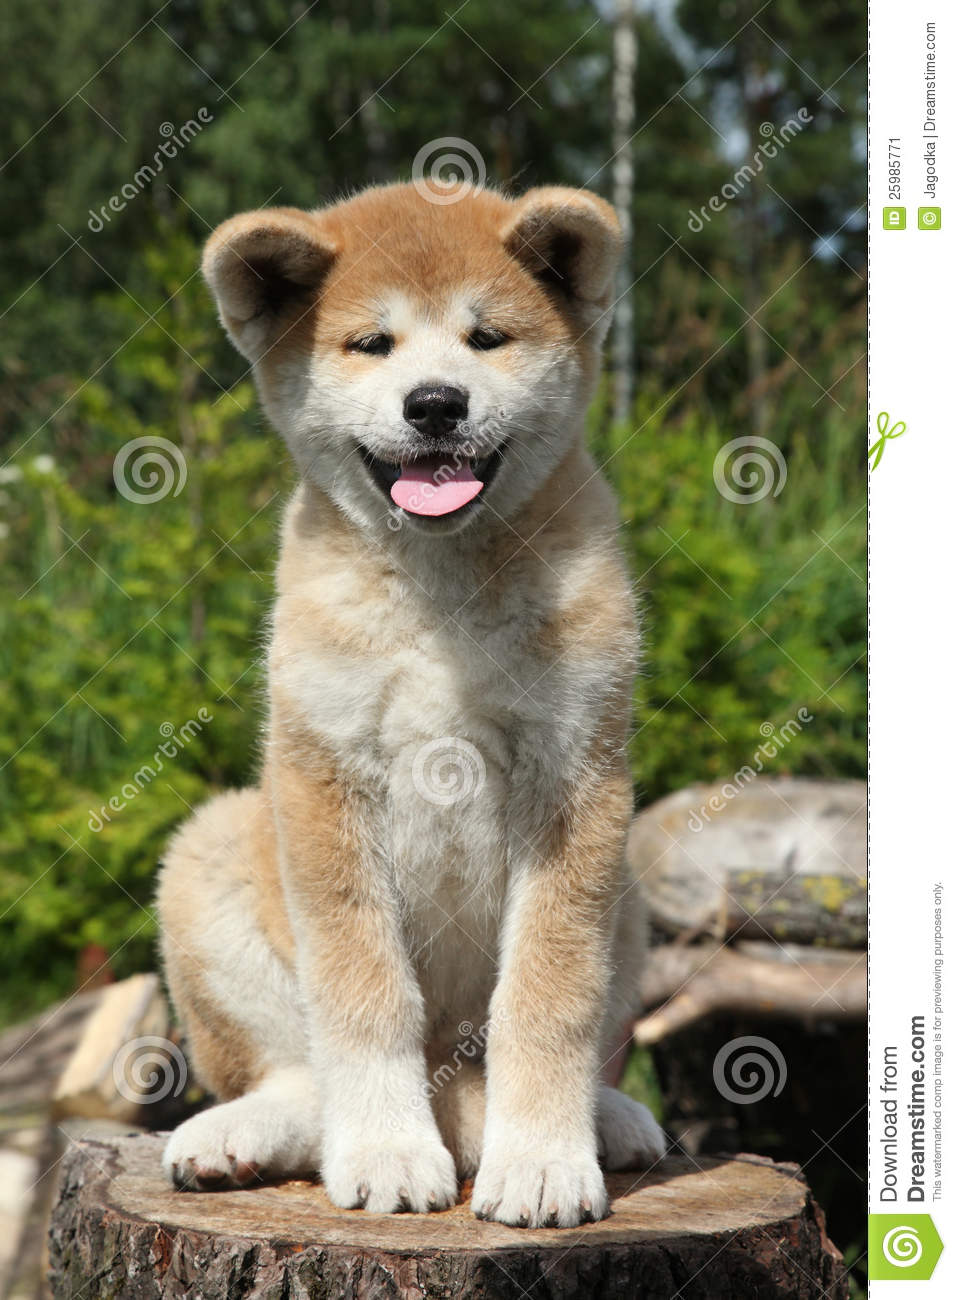 Akita inu puppy sitting on a tree stump. outdoor shoot.